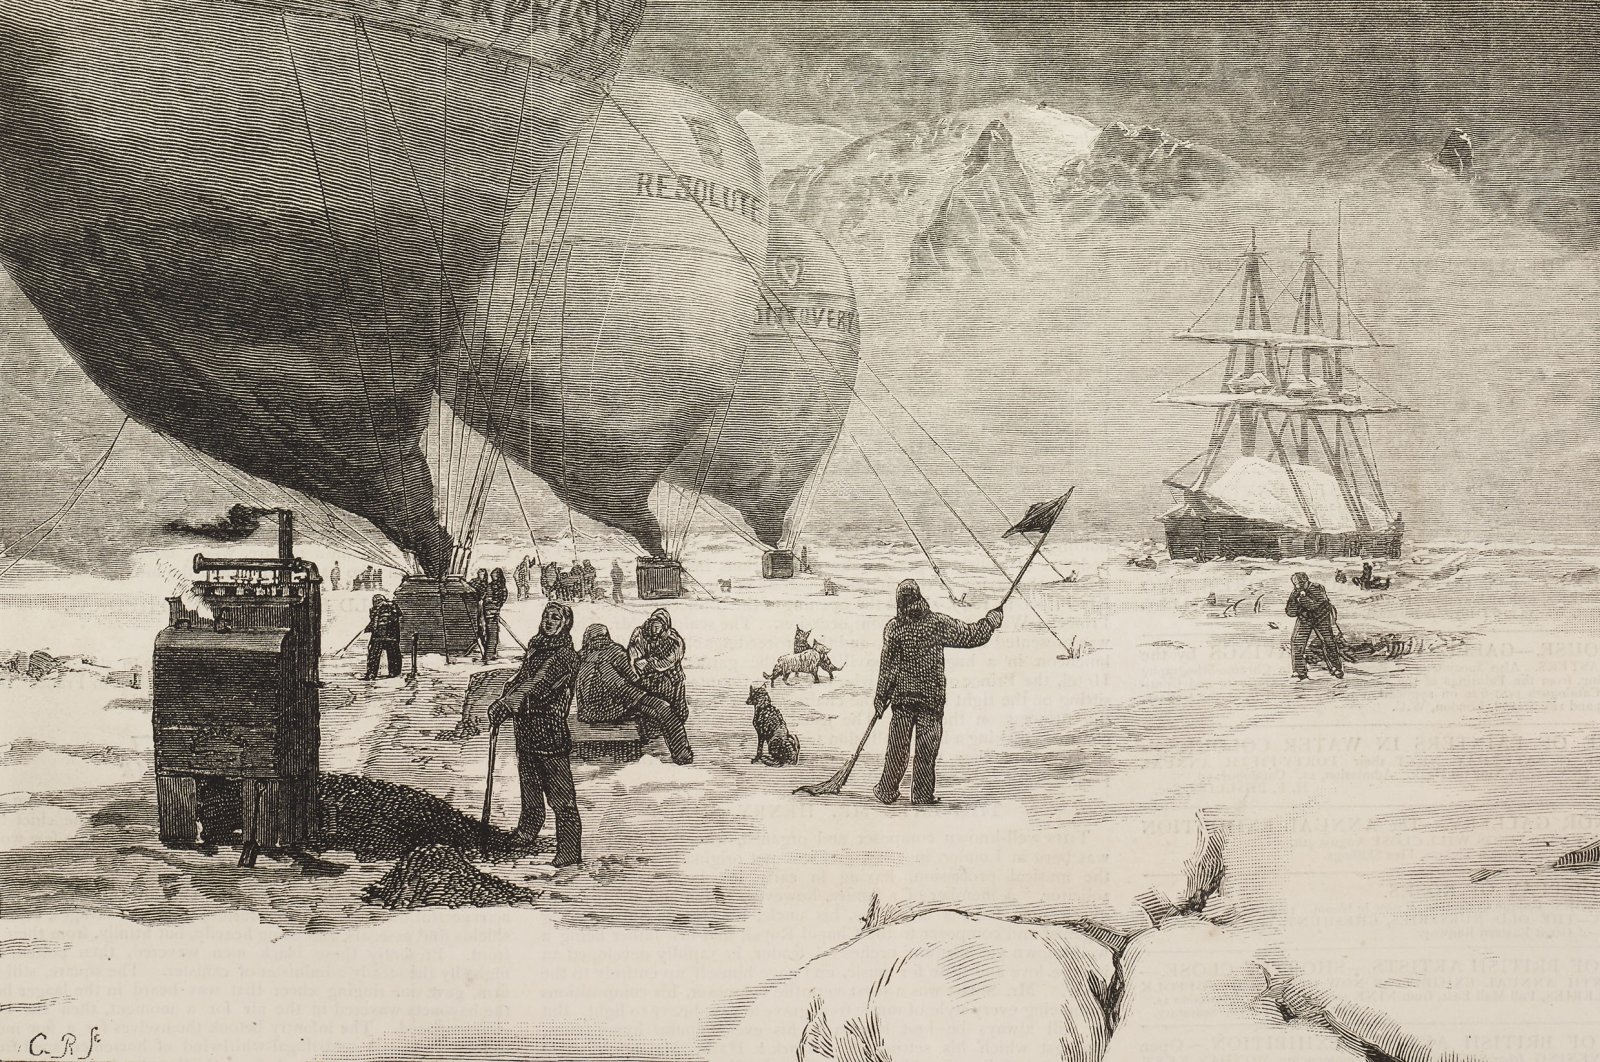 """Climate change and the melting of glaciers has always been a current issue in every field, including adventure novels like Jules Verne's """"The Purchase of the North Pole."""" (Getty Images)"""